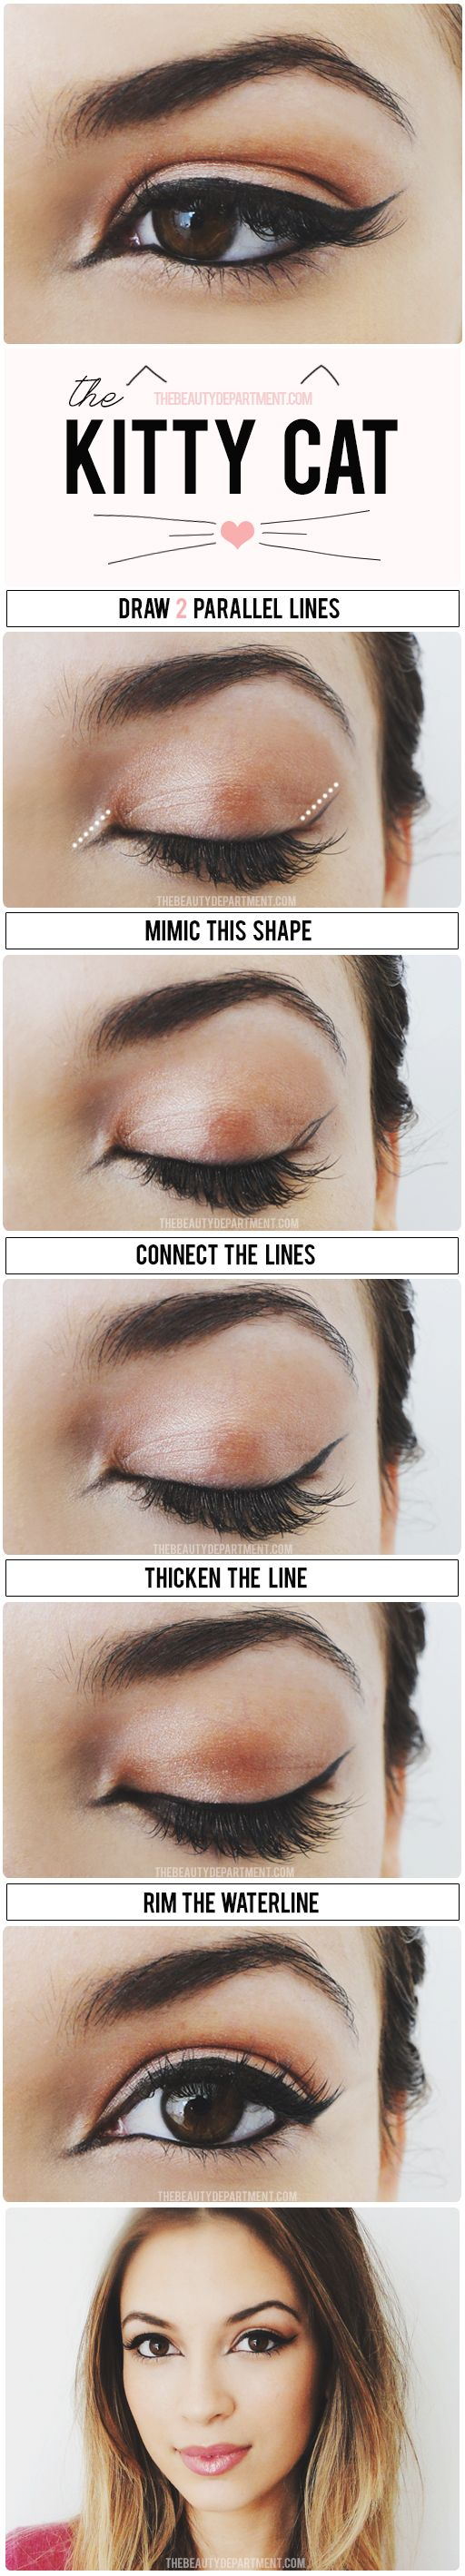 Beauty | thebeautydepartment.com kitty cat eye